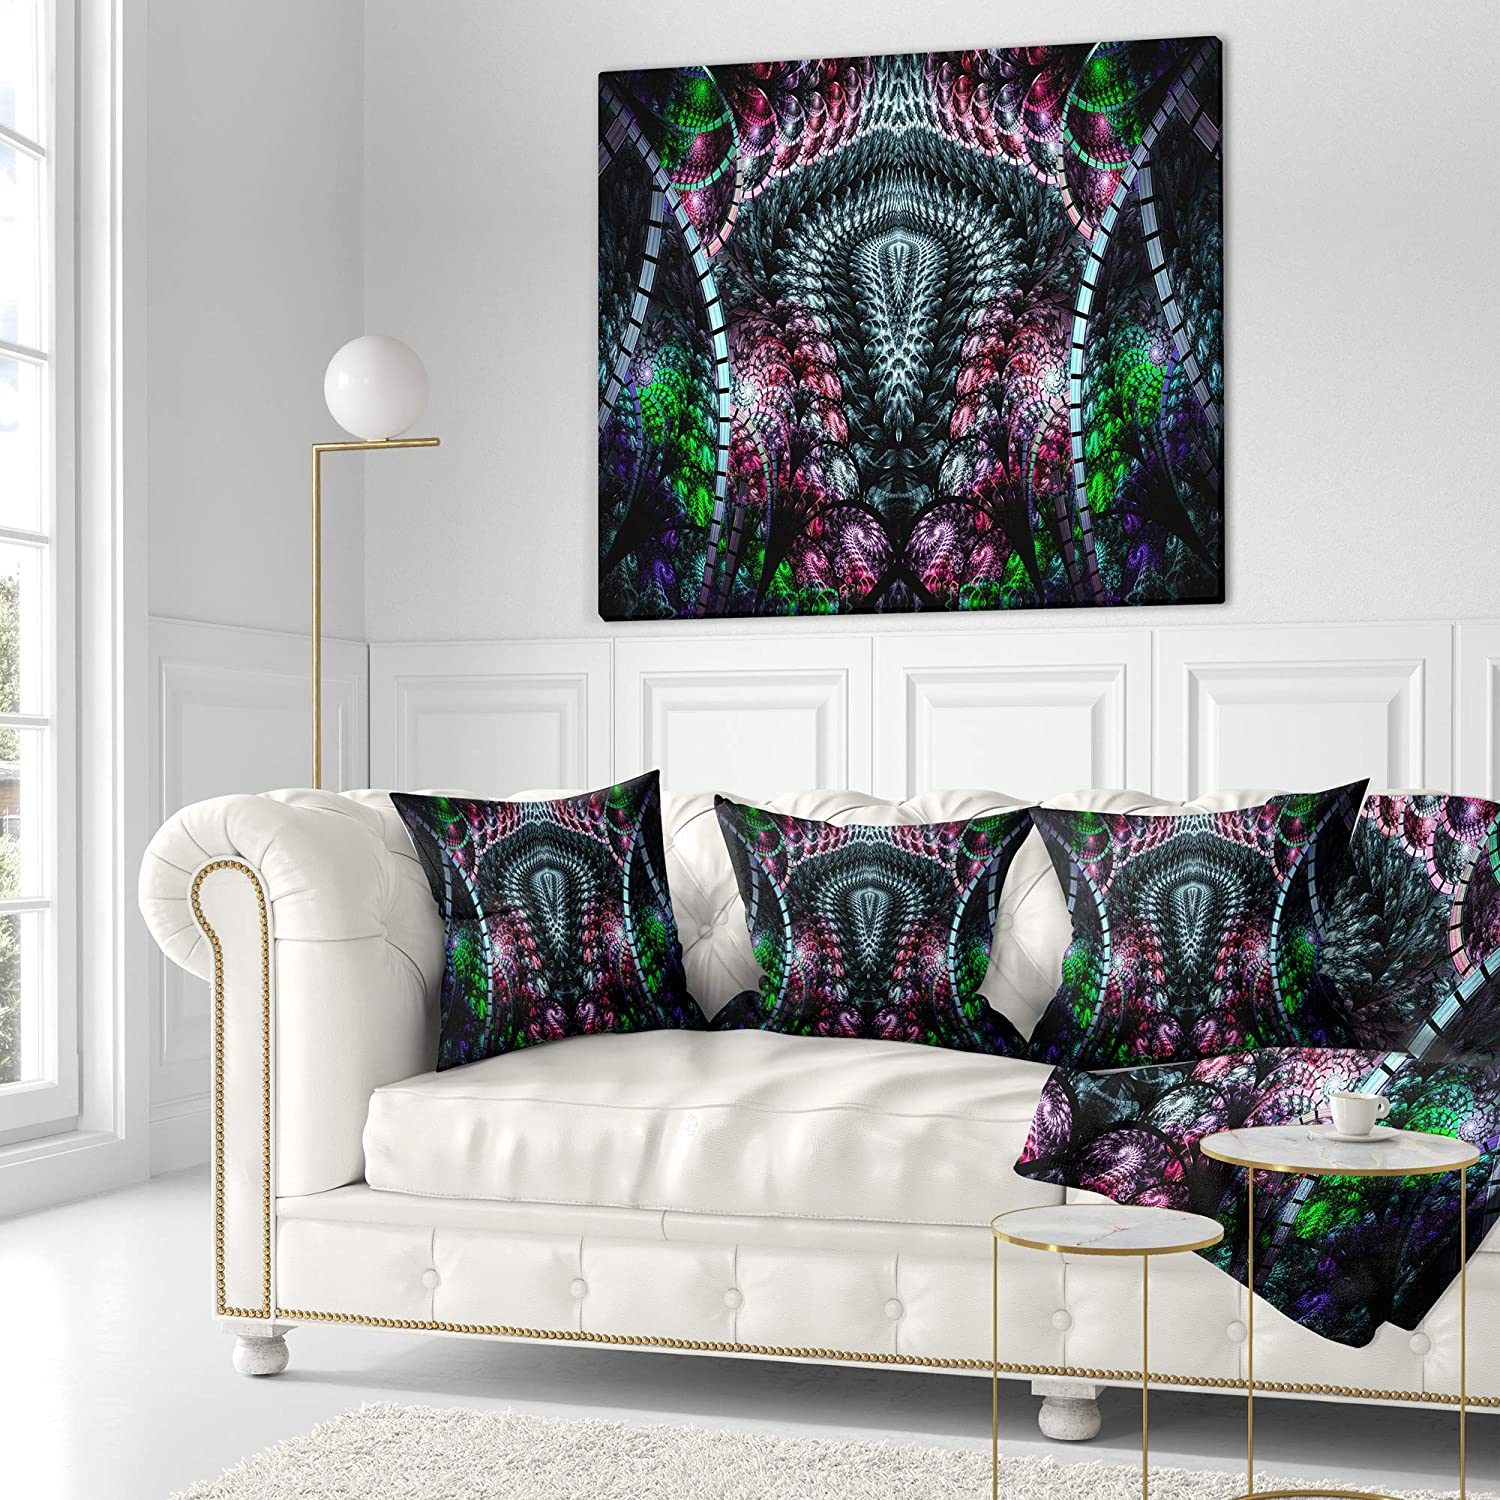 in Insert Printed on Both Side x 18 in Designart CU16515-18-18 Strange Fractal Design on Black Abstract Cushion Cover for Living Room Sofa Throw Pillow 18 in